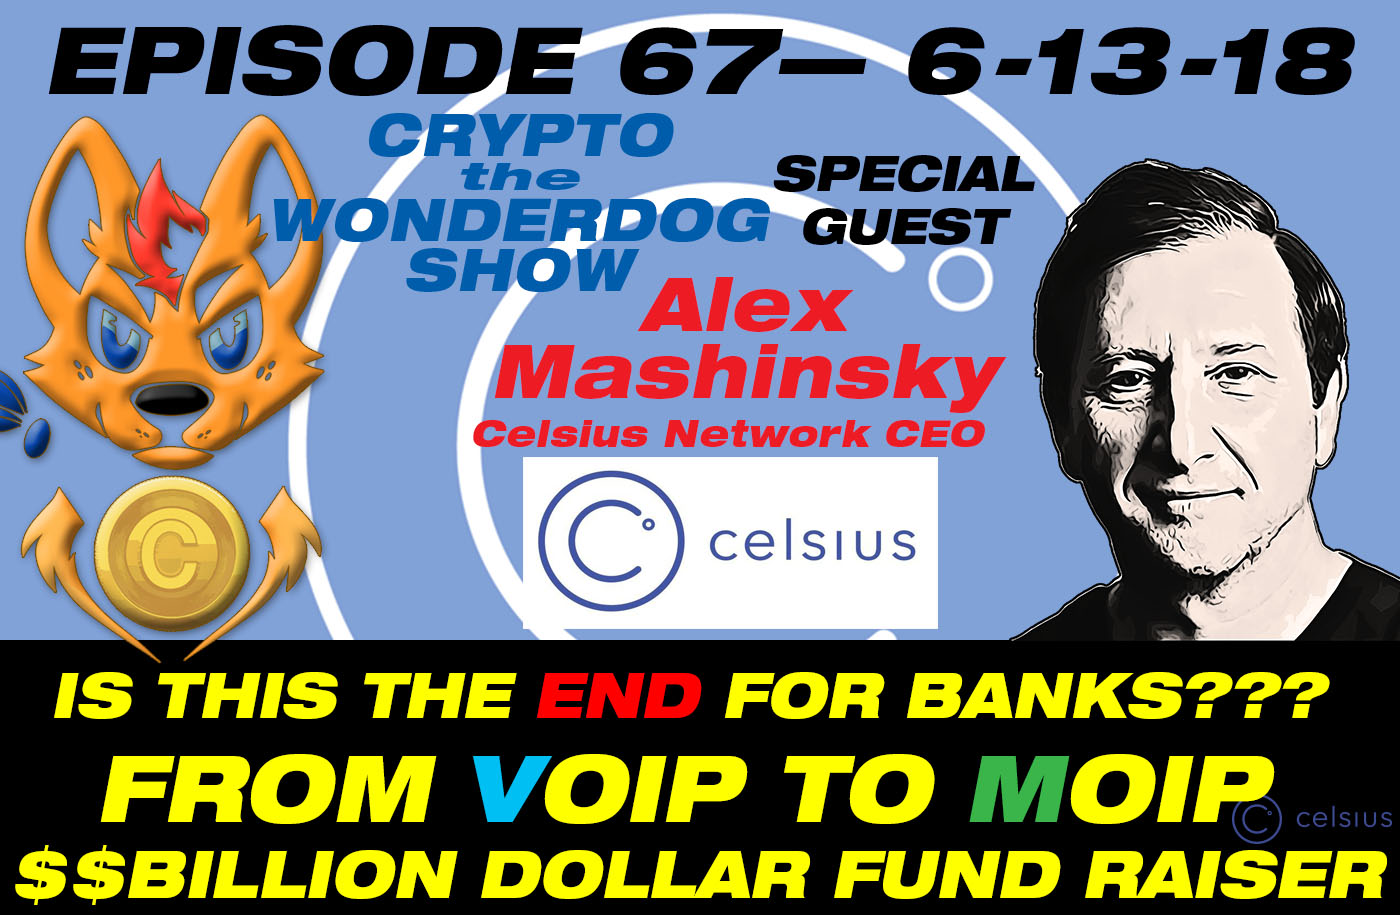 E67 - VOIP Inventor, CRYPTO Investor, 34 patents and +$1B In Raised Funds! - Celsius Network - Alex Mashinsky